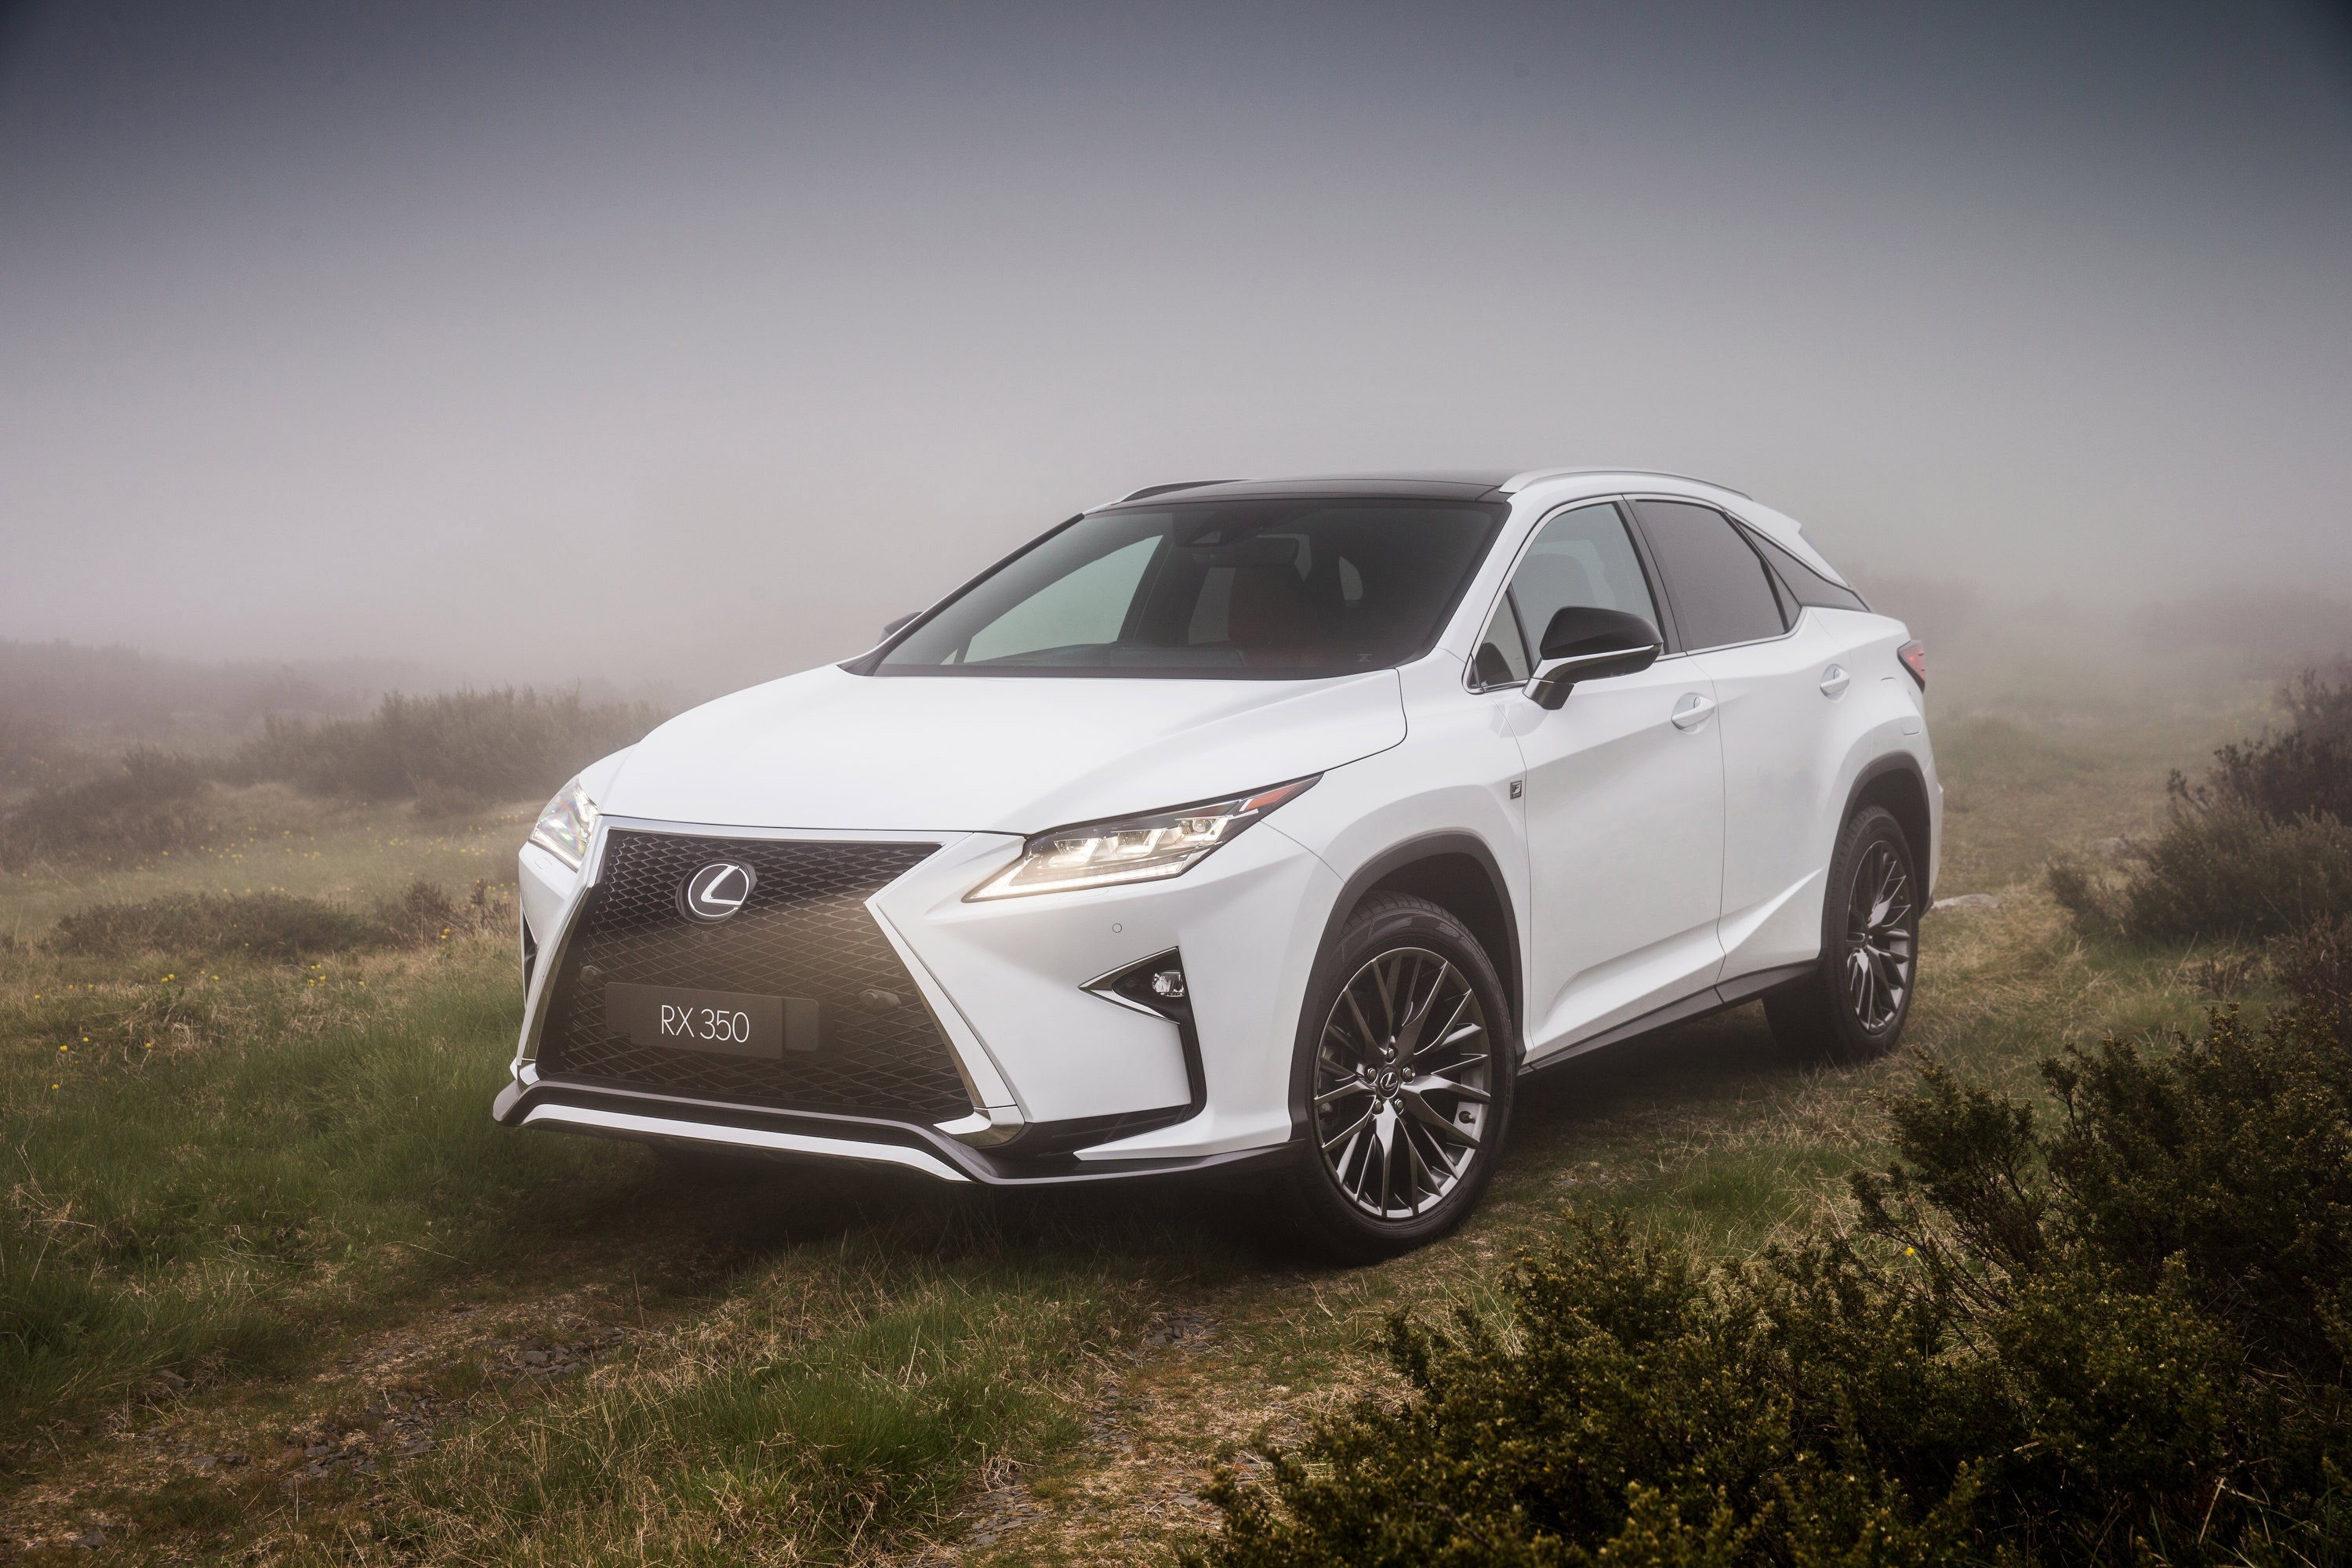 Maxresdefault together with Maxresdefault further Maxresdefault moreover Lexus Rx Exterior furthermore D Fs Lexus Rx Roof Cross Rails Used But Like New Free Shipping Img. on 2016 lexus rx 350